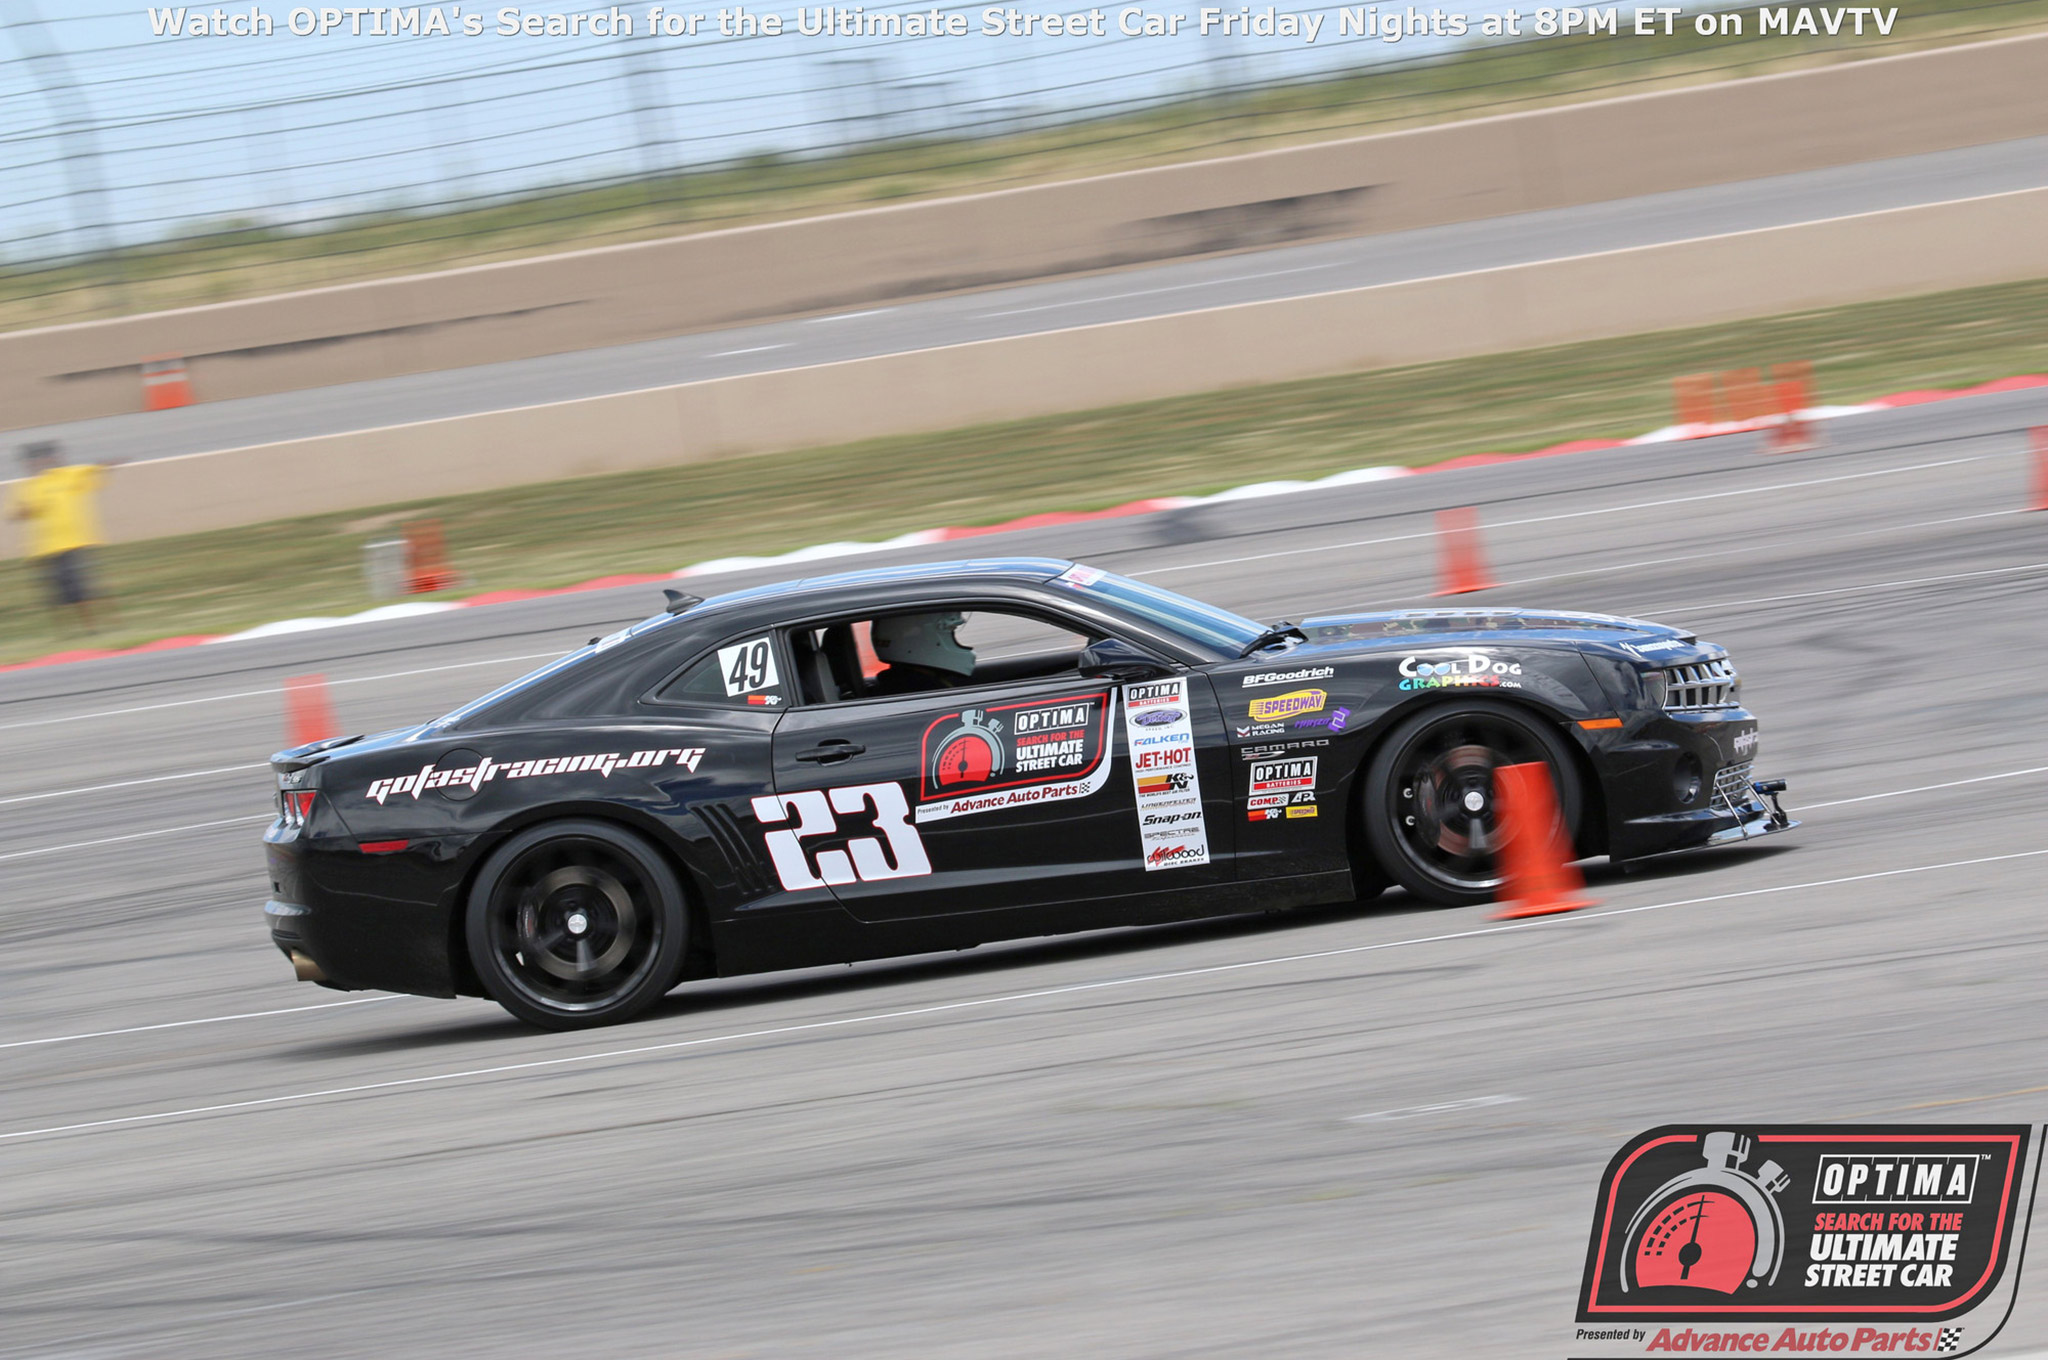 Track time is plentiful at Optima qualifying events, and Marty Clarke made the most of his weekend. In addition to 16 runs in the Detroit Speed Autocross and 17 passes on the Wilwood Speed Stop Challenge, he managed to log 48 laps in the Falken Tire Road Course Time Trial.